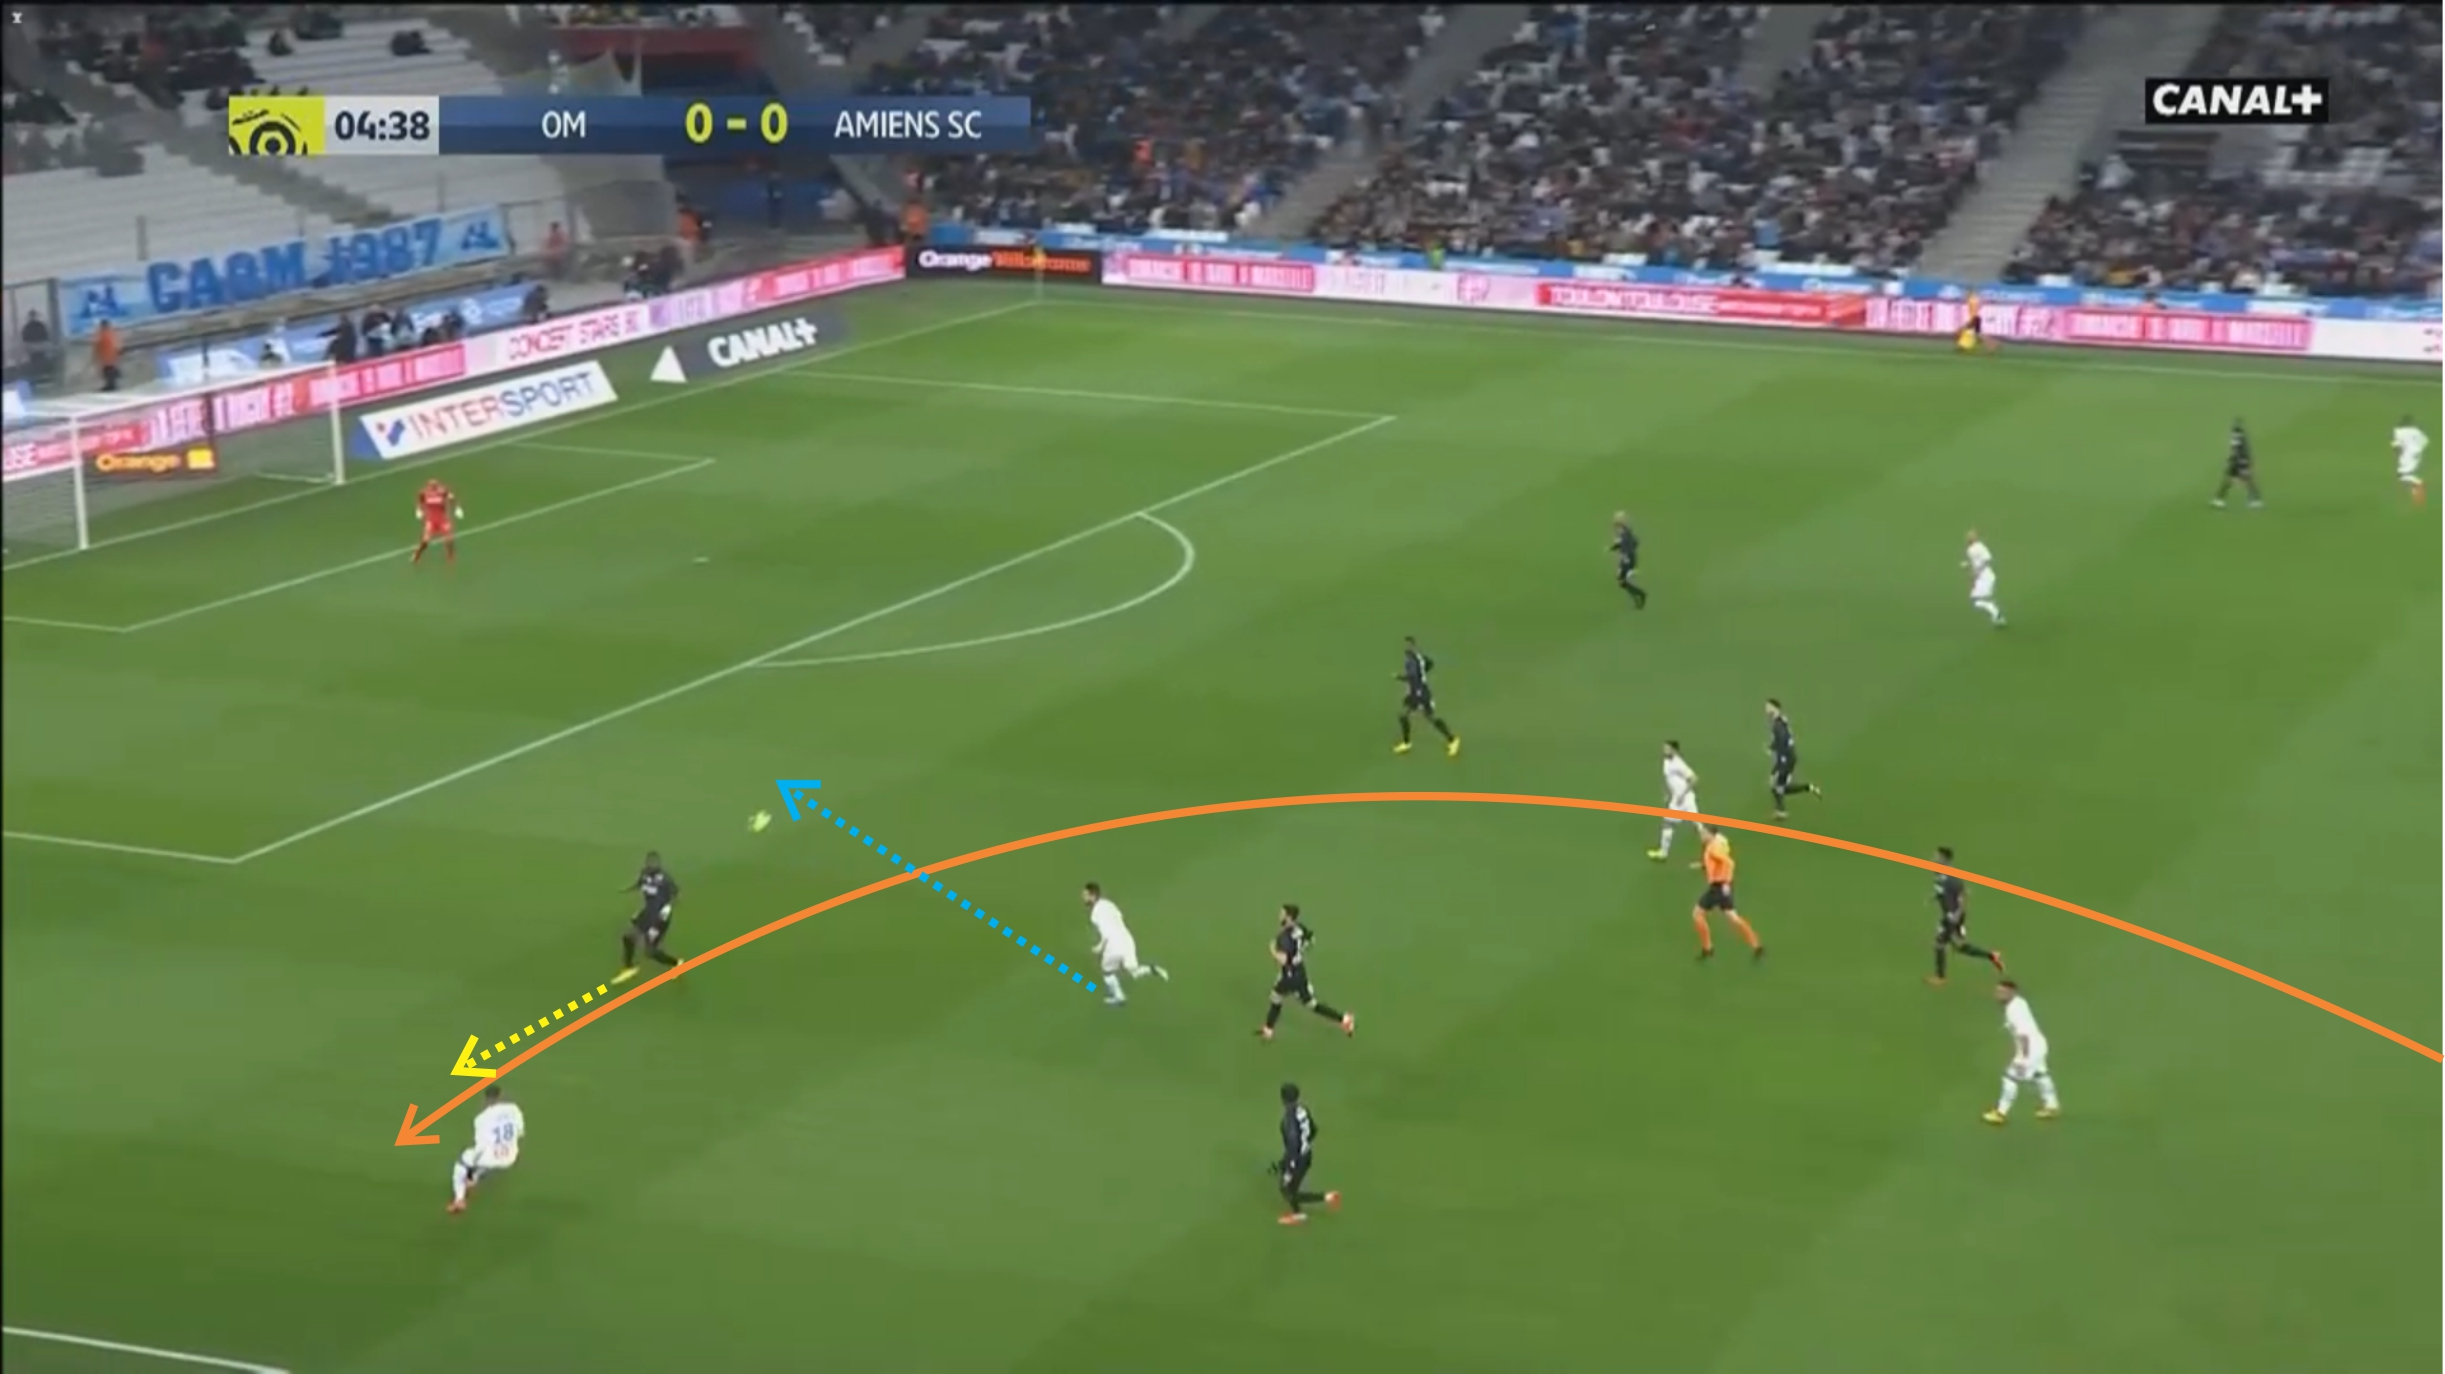 Andre Villas-Boas at Marseille 2019/20 - tactical analysis tactics